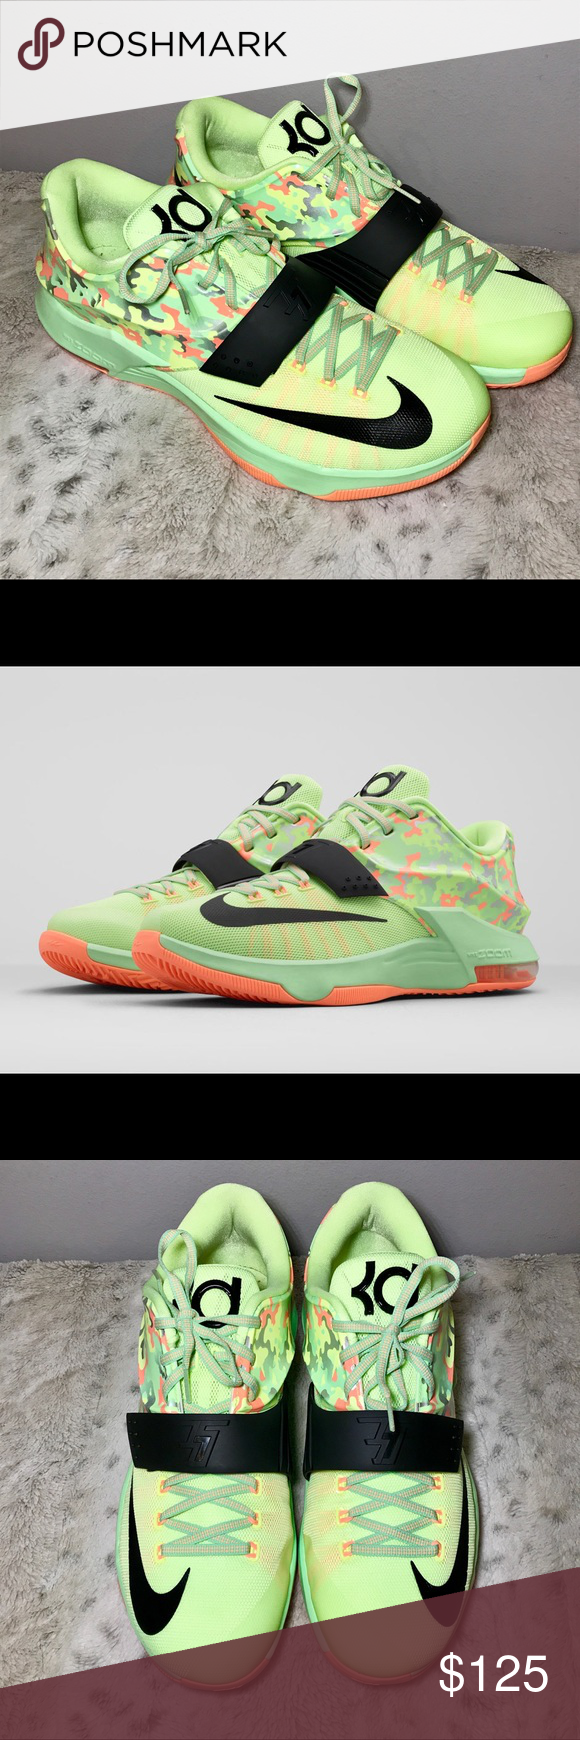 finest selection 26955 62cb4 🔥Nike KD Easter 7 Liquid Lime Camo Men s 13 🔥Nike KD Easter 7 Liquid